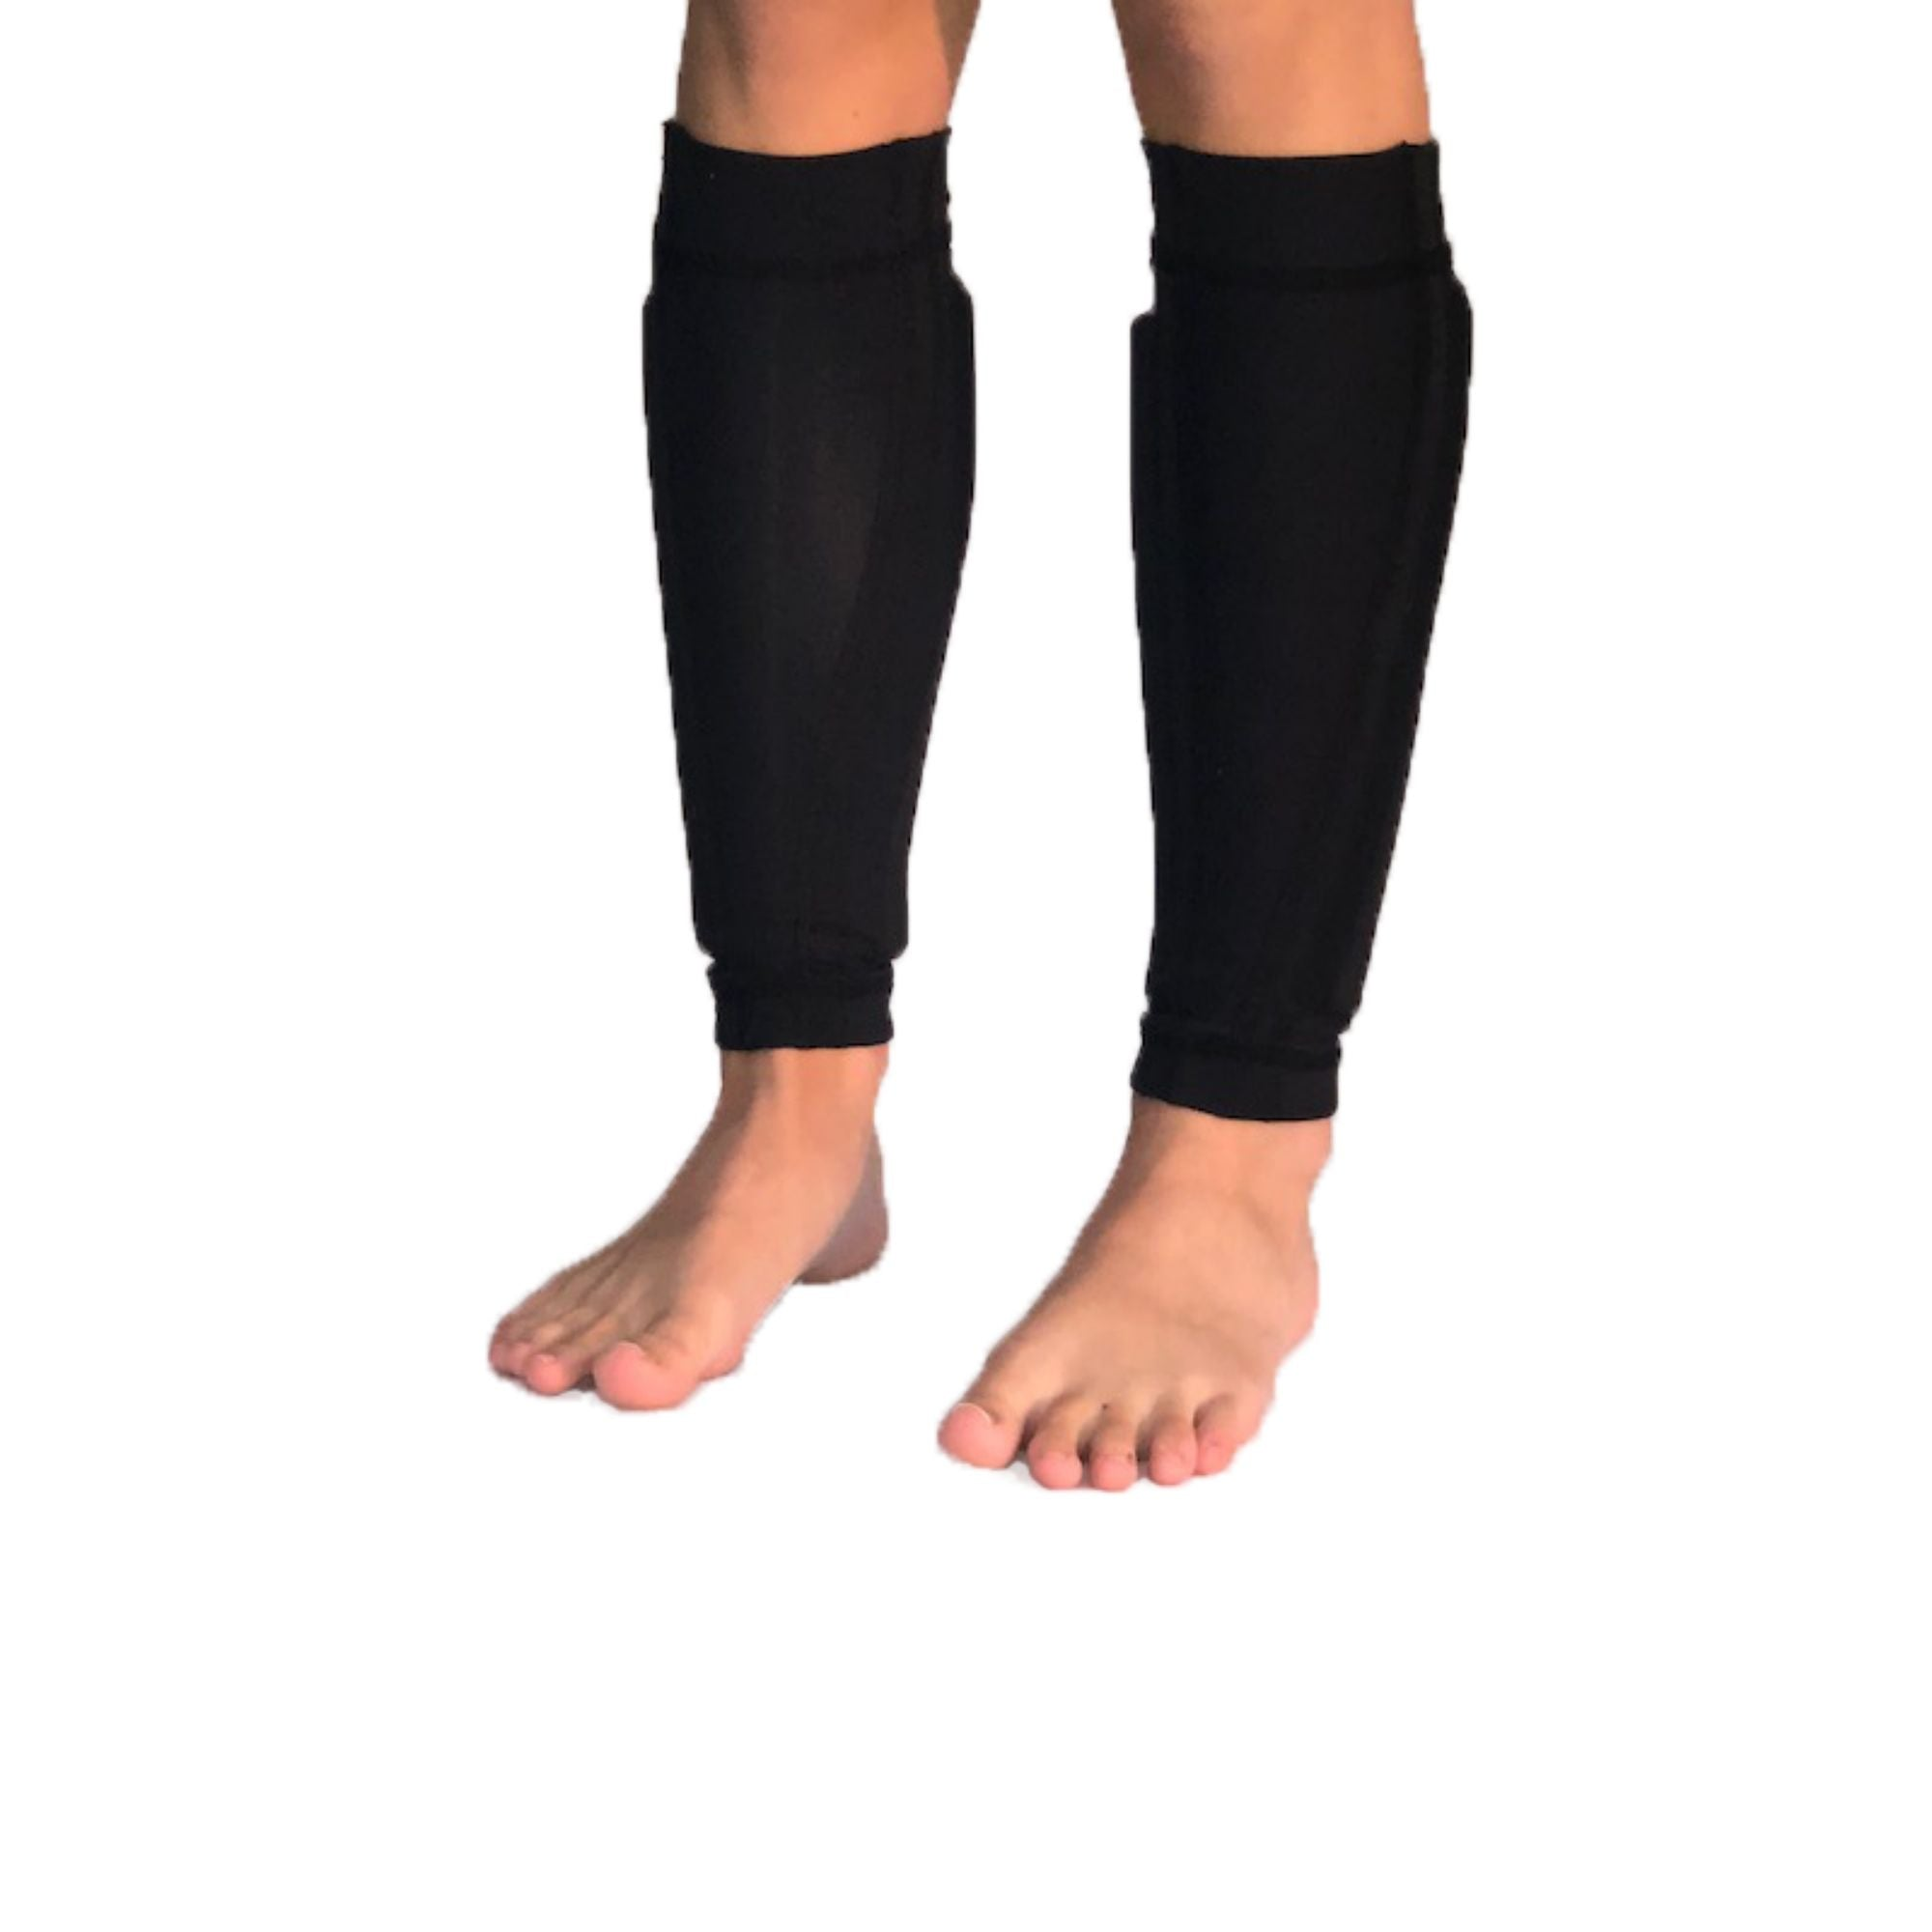 MEN'S BLACK COMPRESSION SLEEVE LEGS